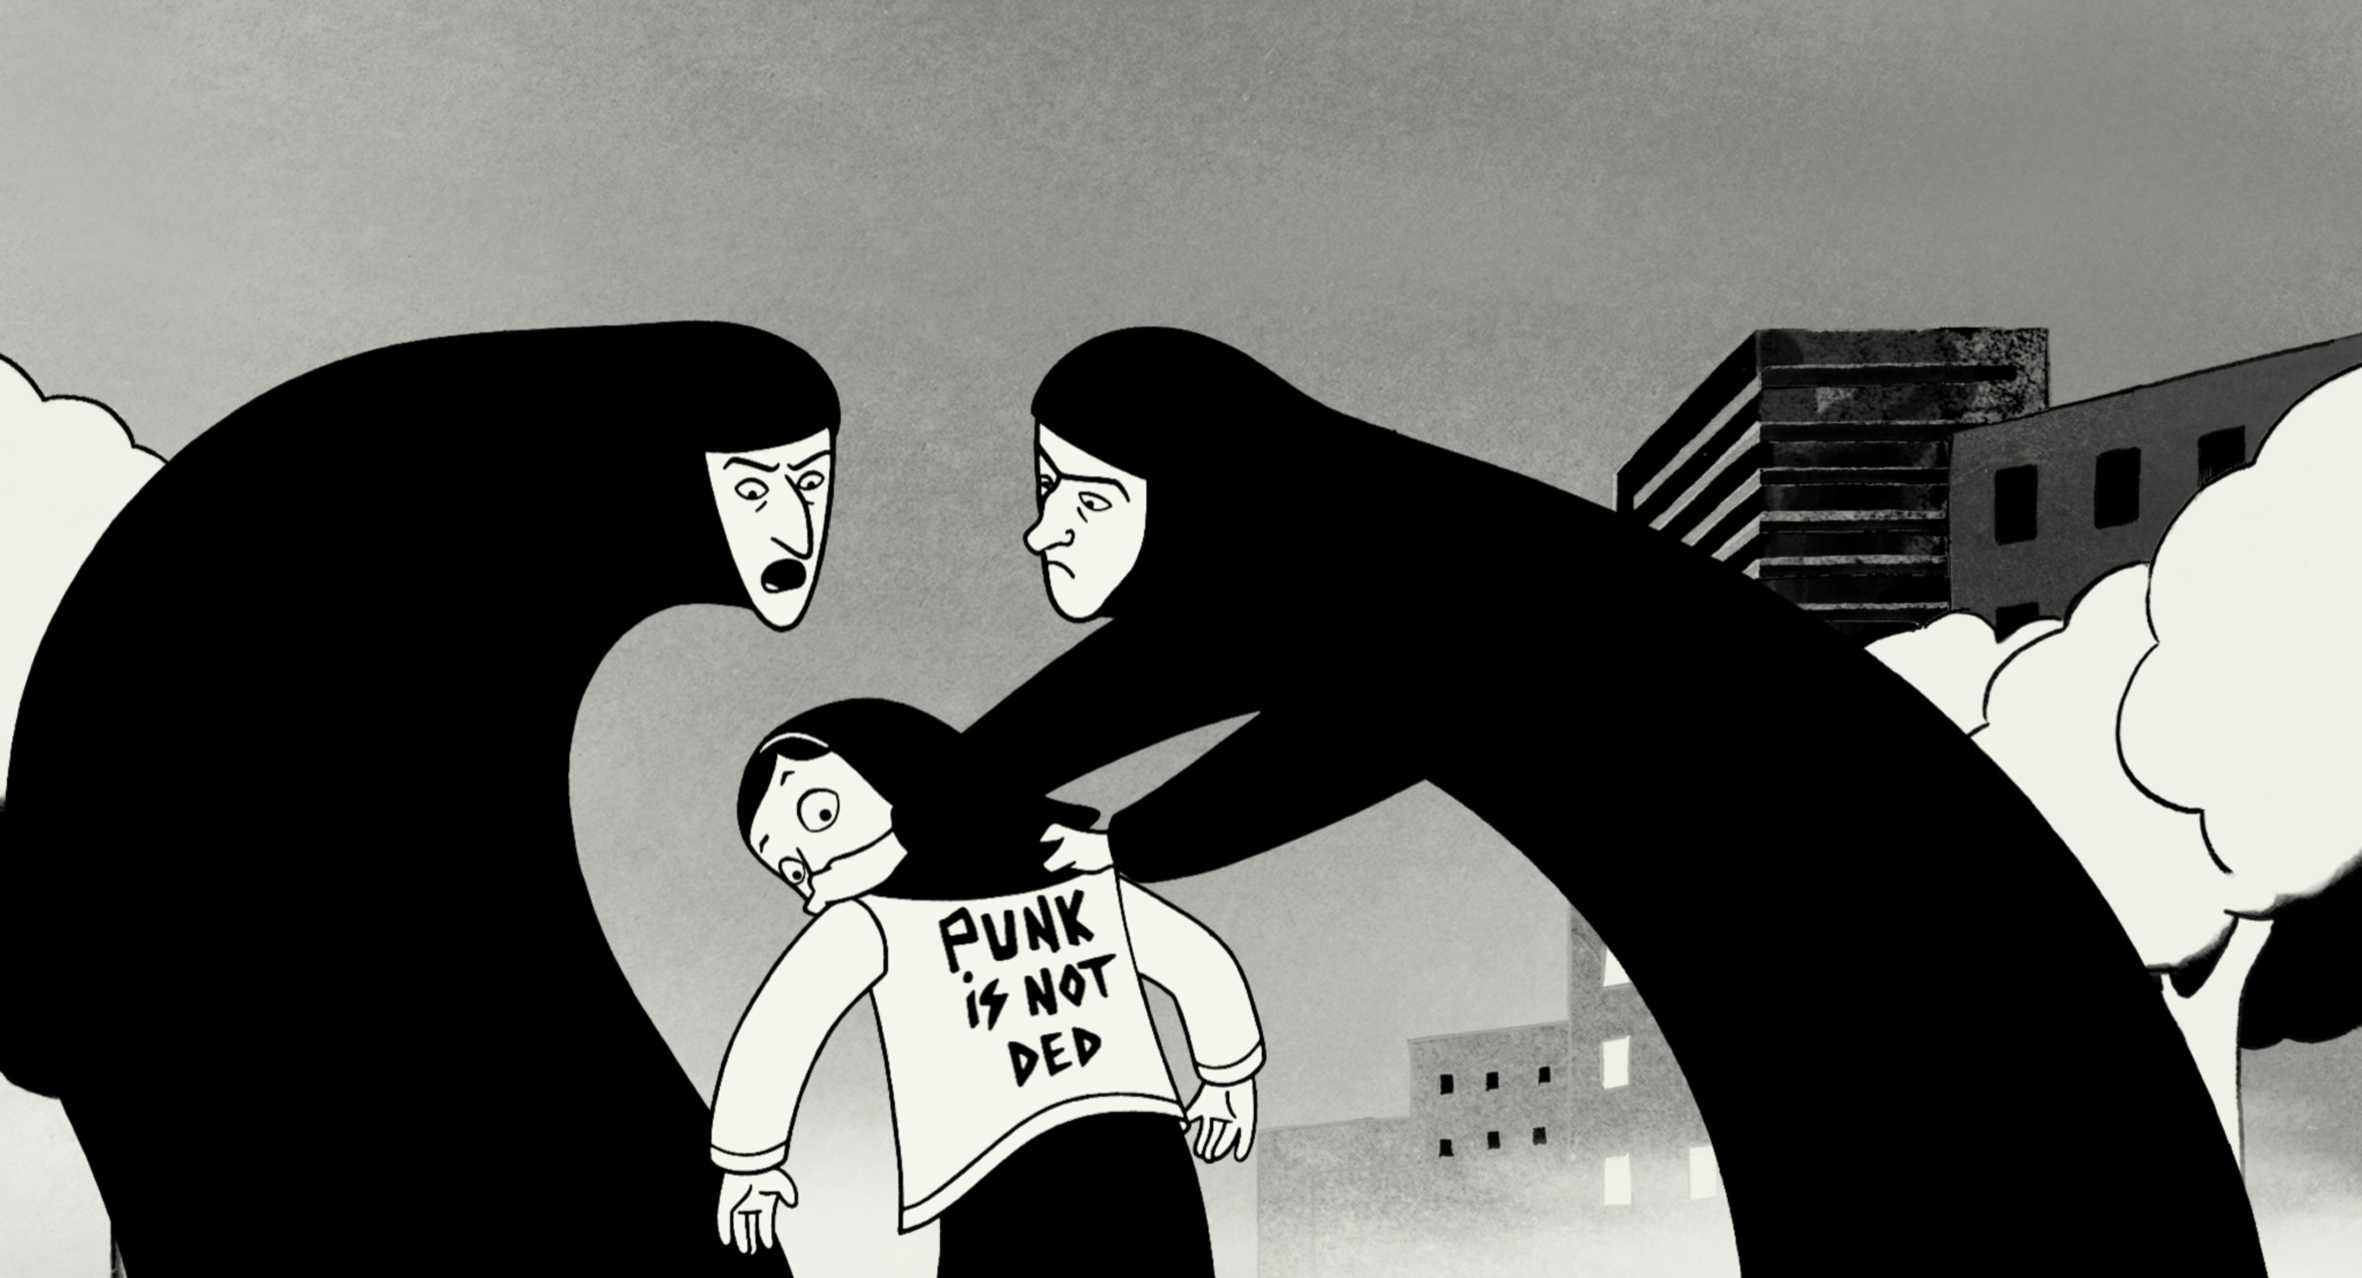 Illustration from Persepolis by Marjane Satrapi and Vincent Paronnaud/ courtesy of Sony Pictures Classics Inc.